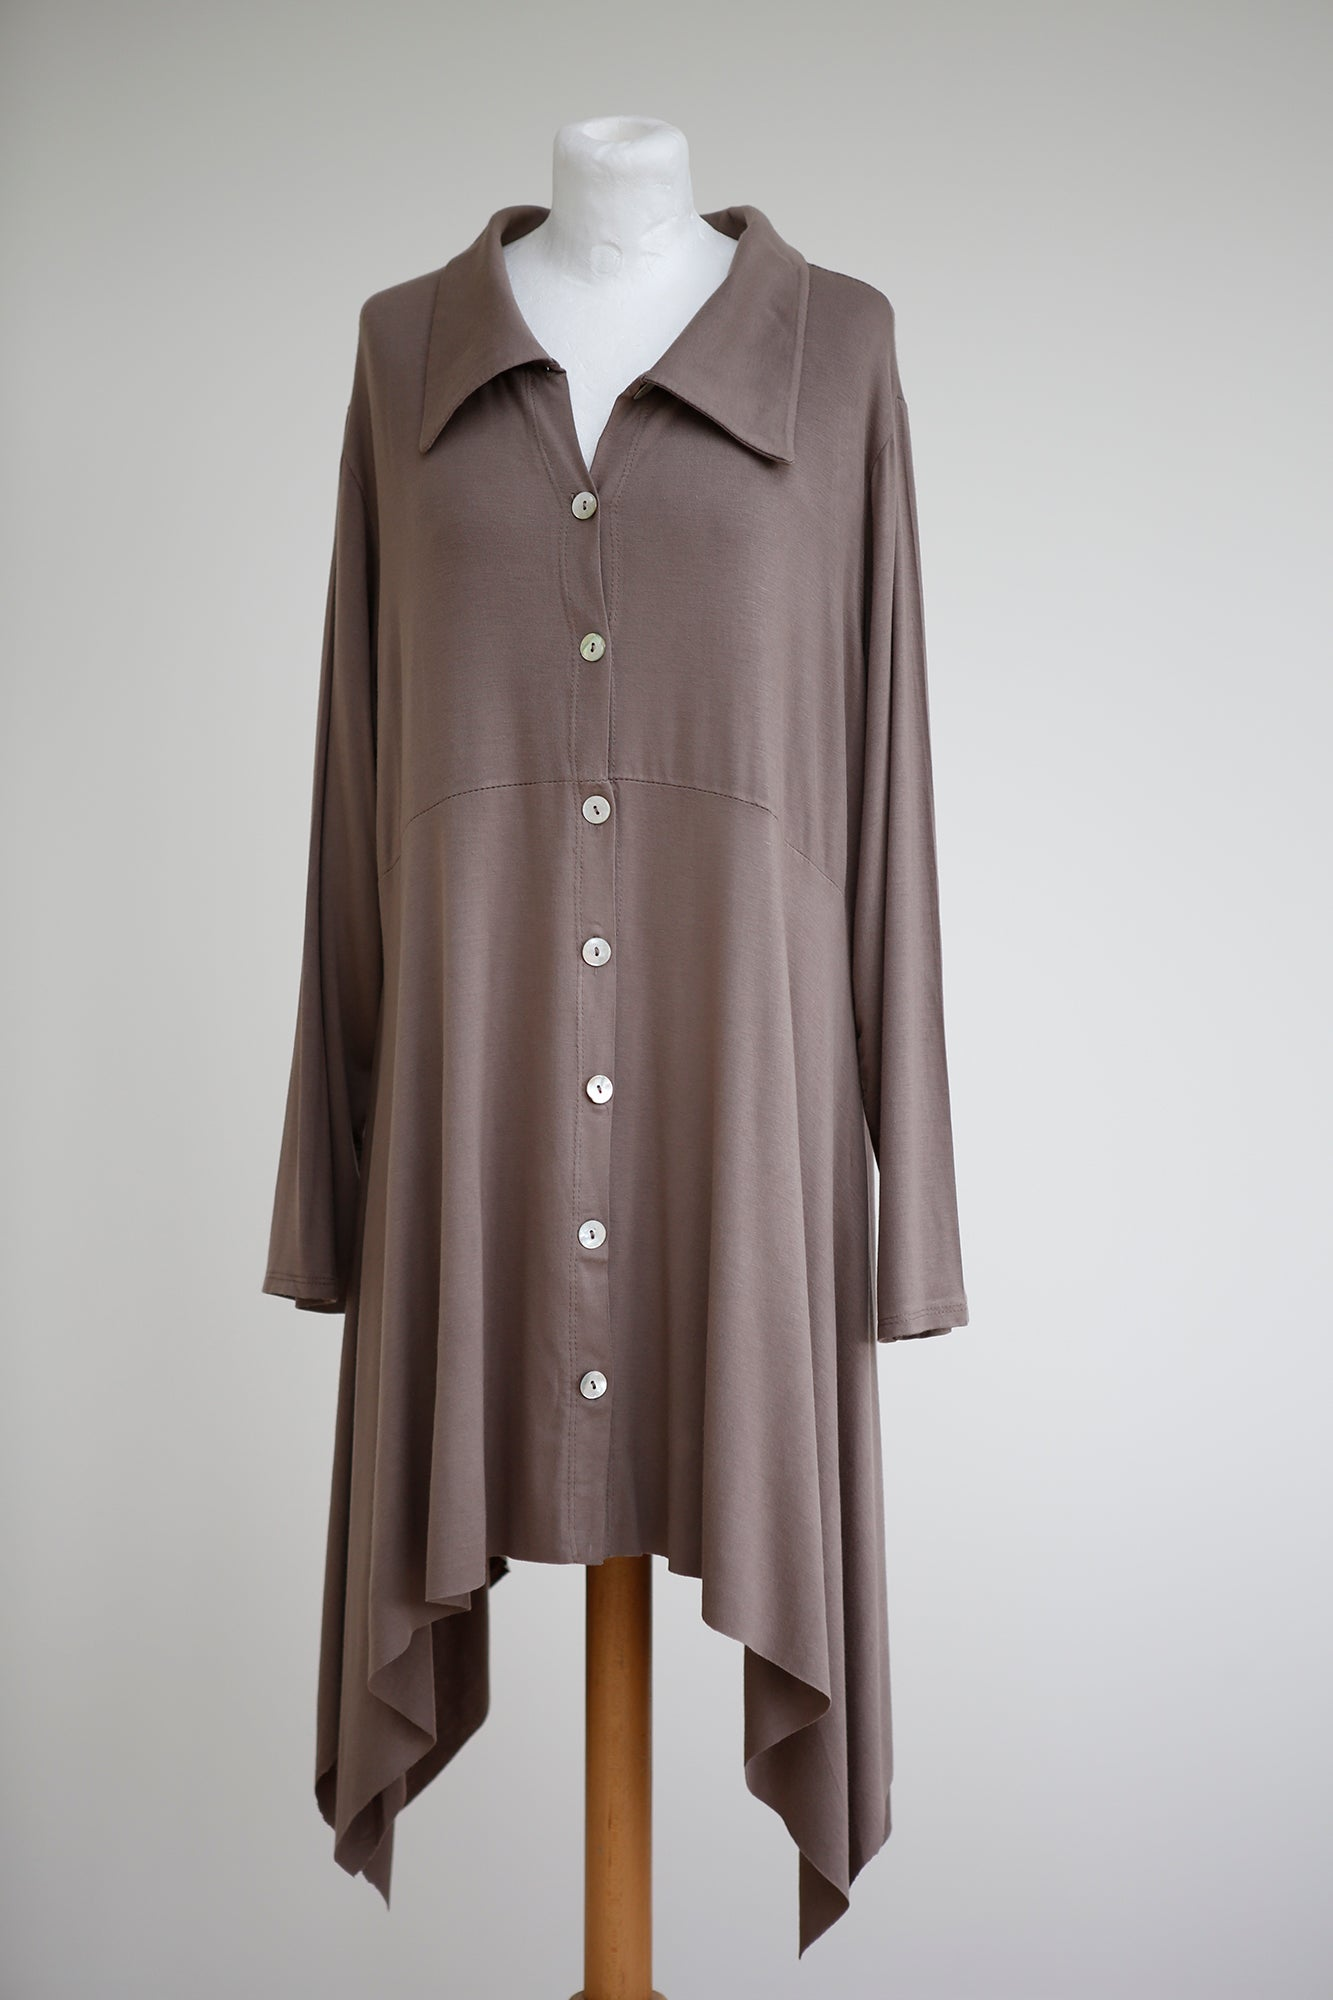 LONG LINE ASYMMETRIC SHIRT/JACKET WITH SHELL BUTTONS